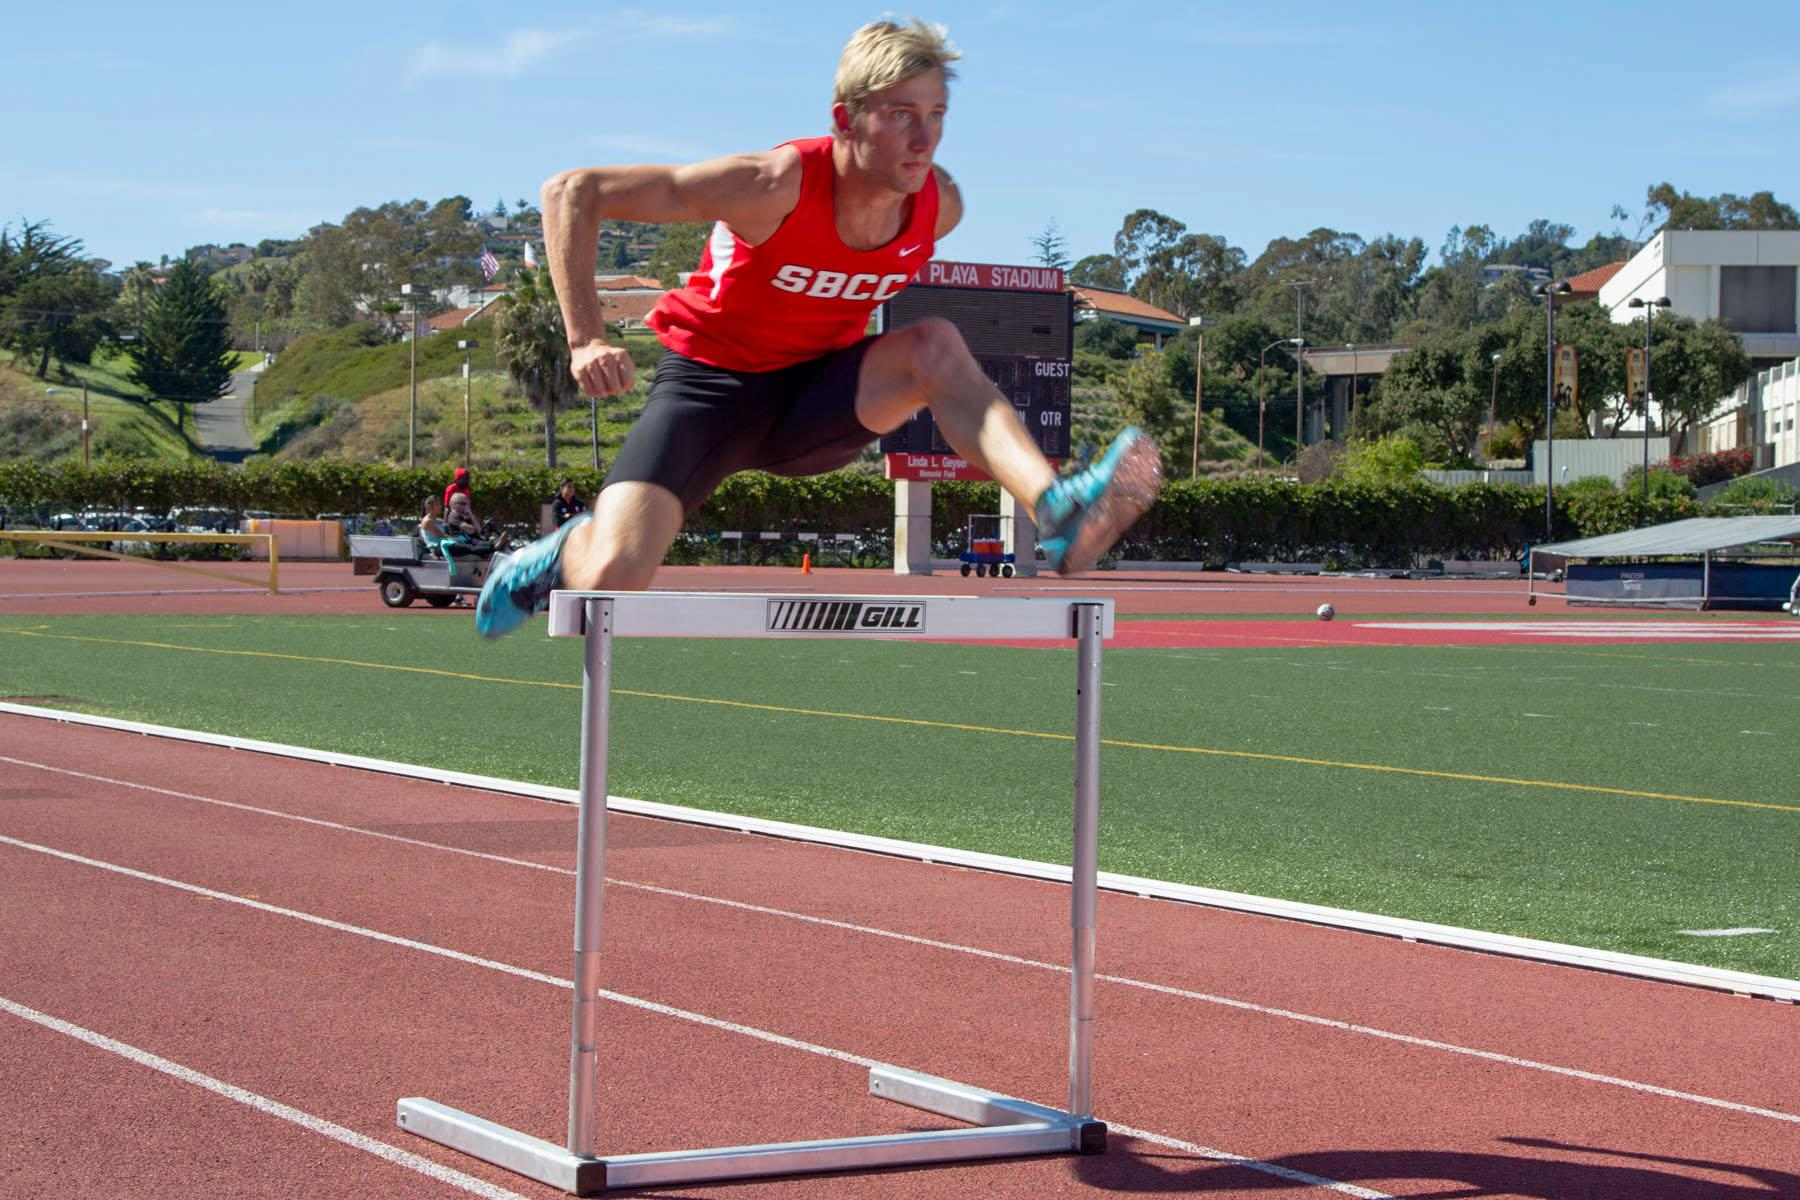 Bas Van Leersum is one of the leading athletes on the City College track team this year, as both a hurdler and a sprinter, Thursday, March 5, at La Playa Stadium in Santa Barbara.